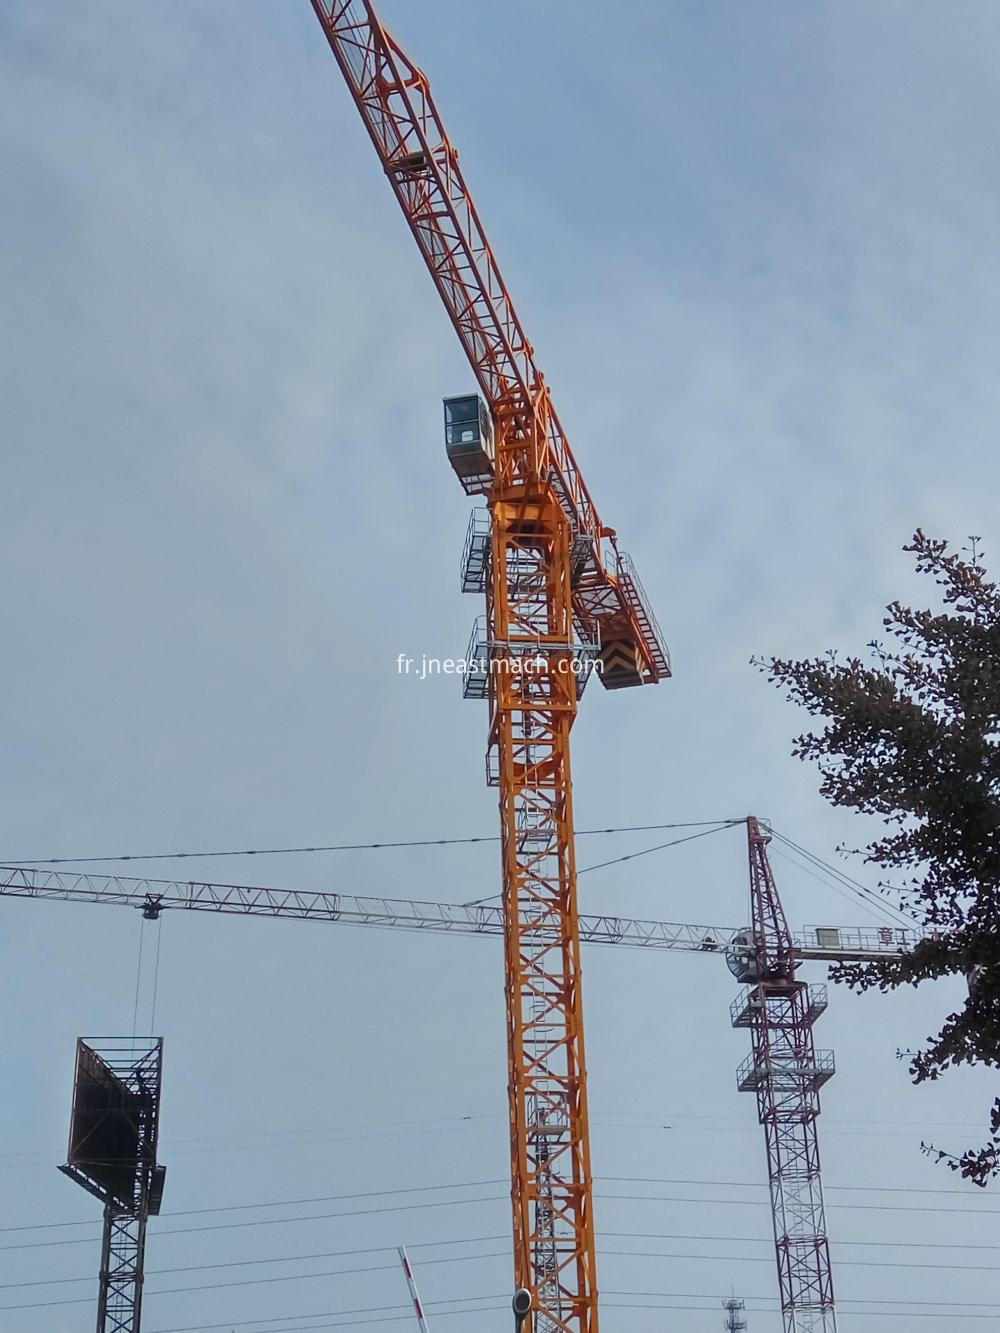 Topless Type Qtz310 16t Construction Tower Cranes Travelling Tower Crane Model